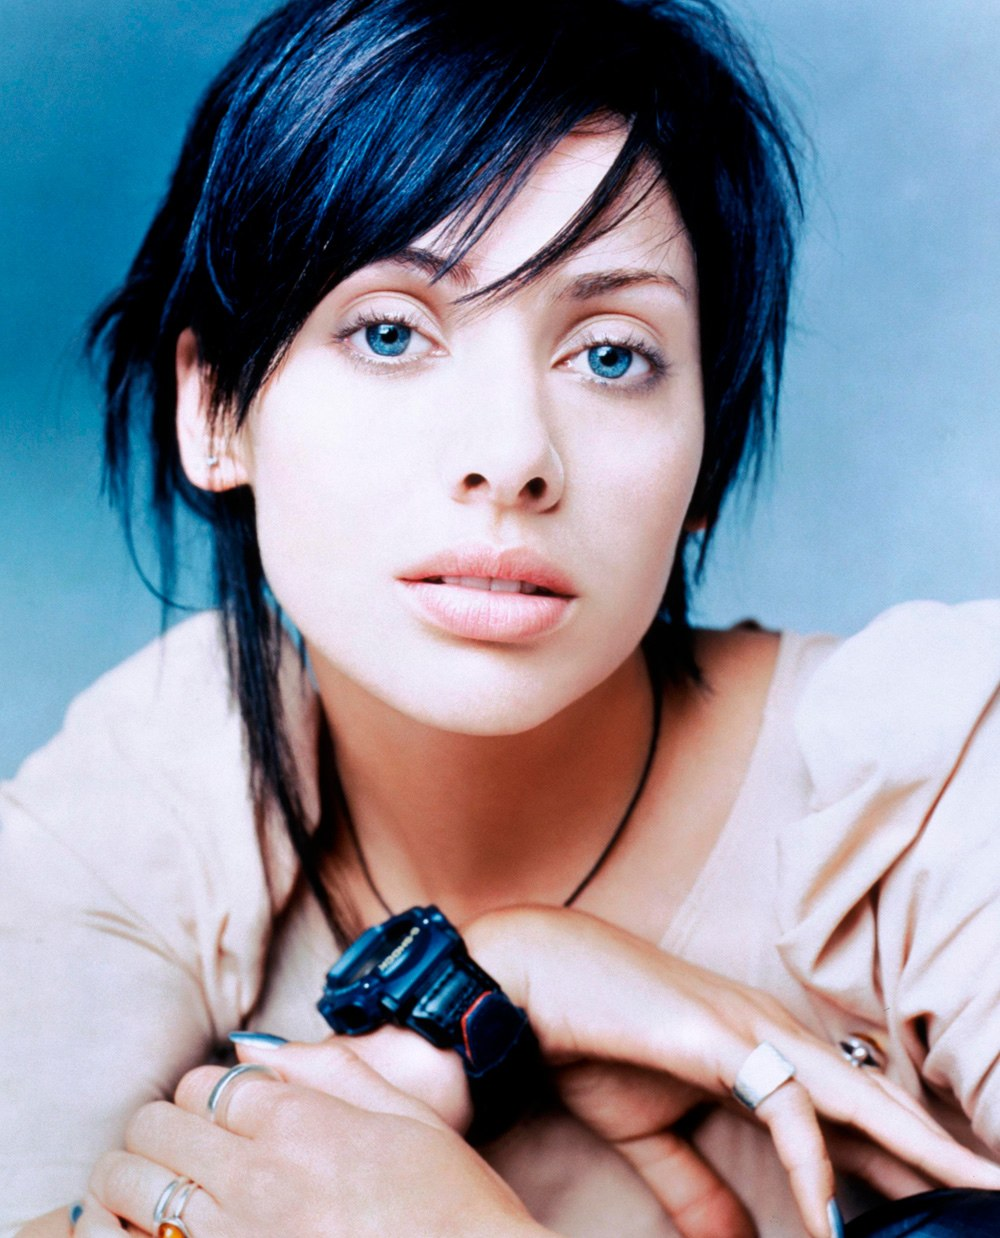 Natalie Imbruglia to return with her first album in 5 years